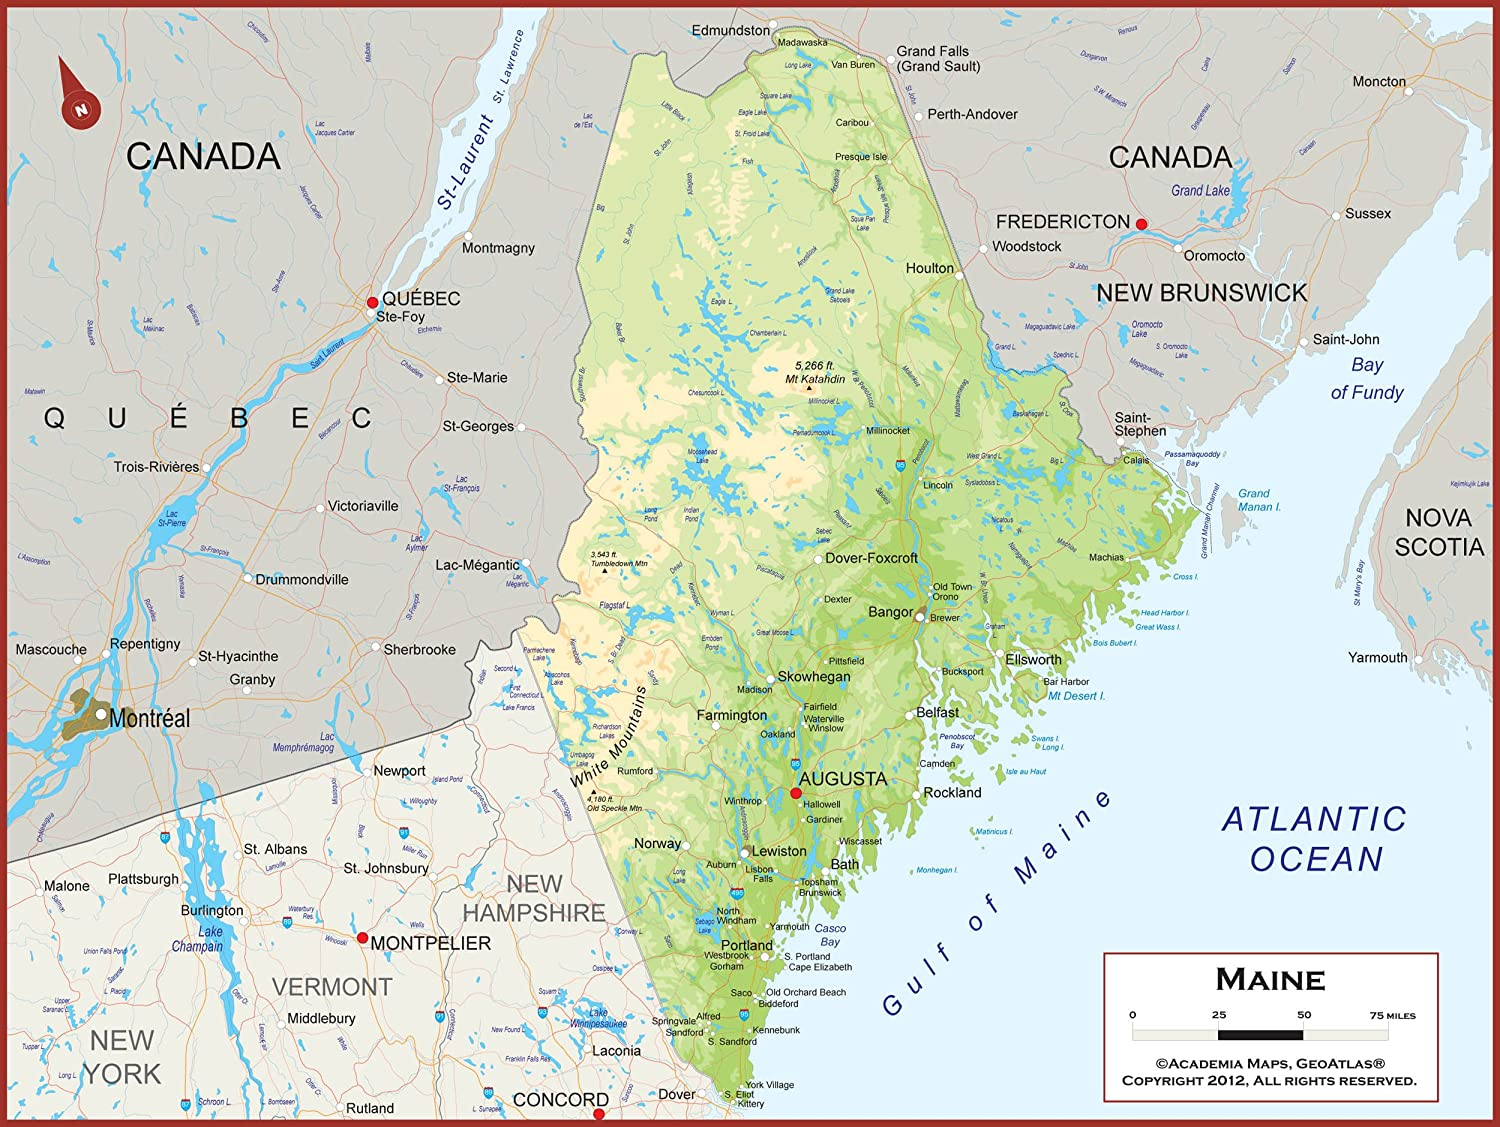 State Of Maine Map With Cities.Amazon Com 60 X 45 Giant Maine State Wall Map Poster With